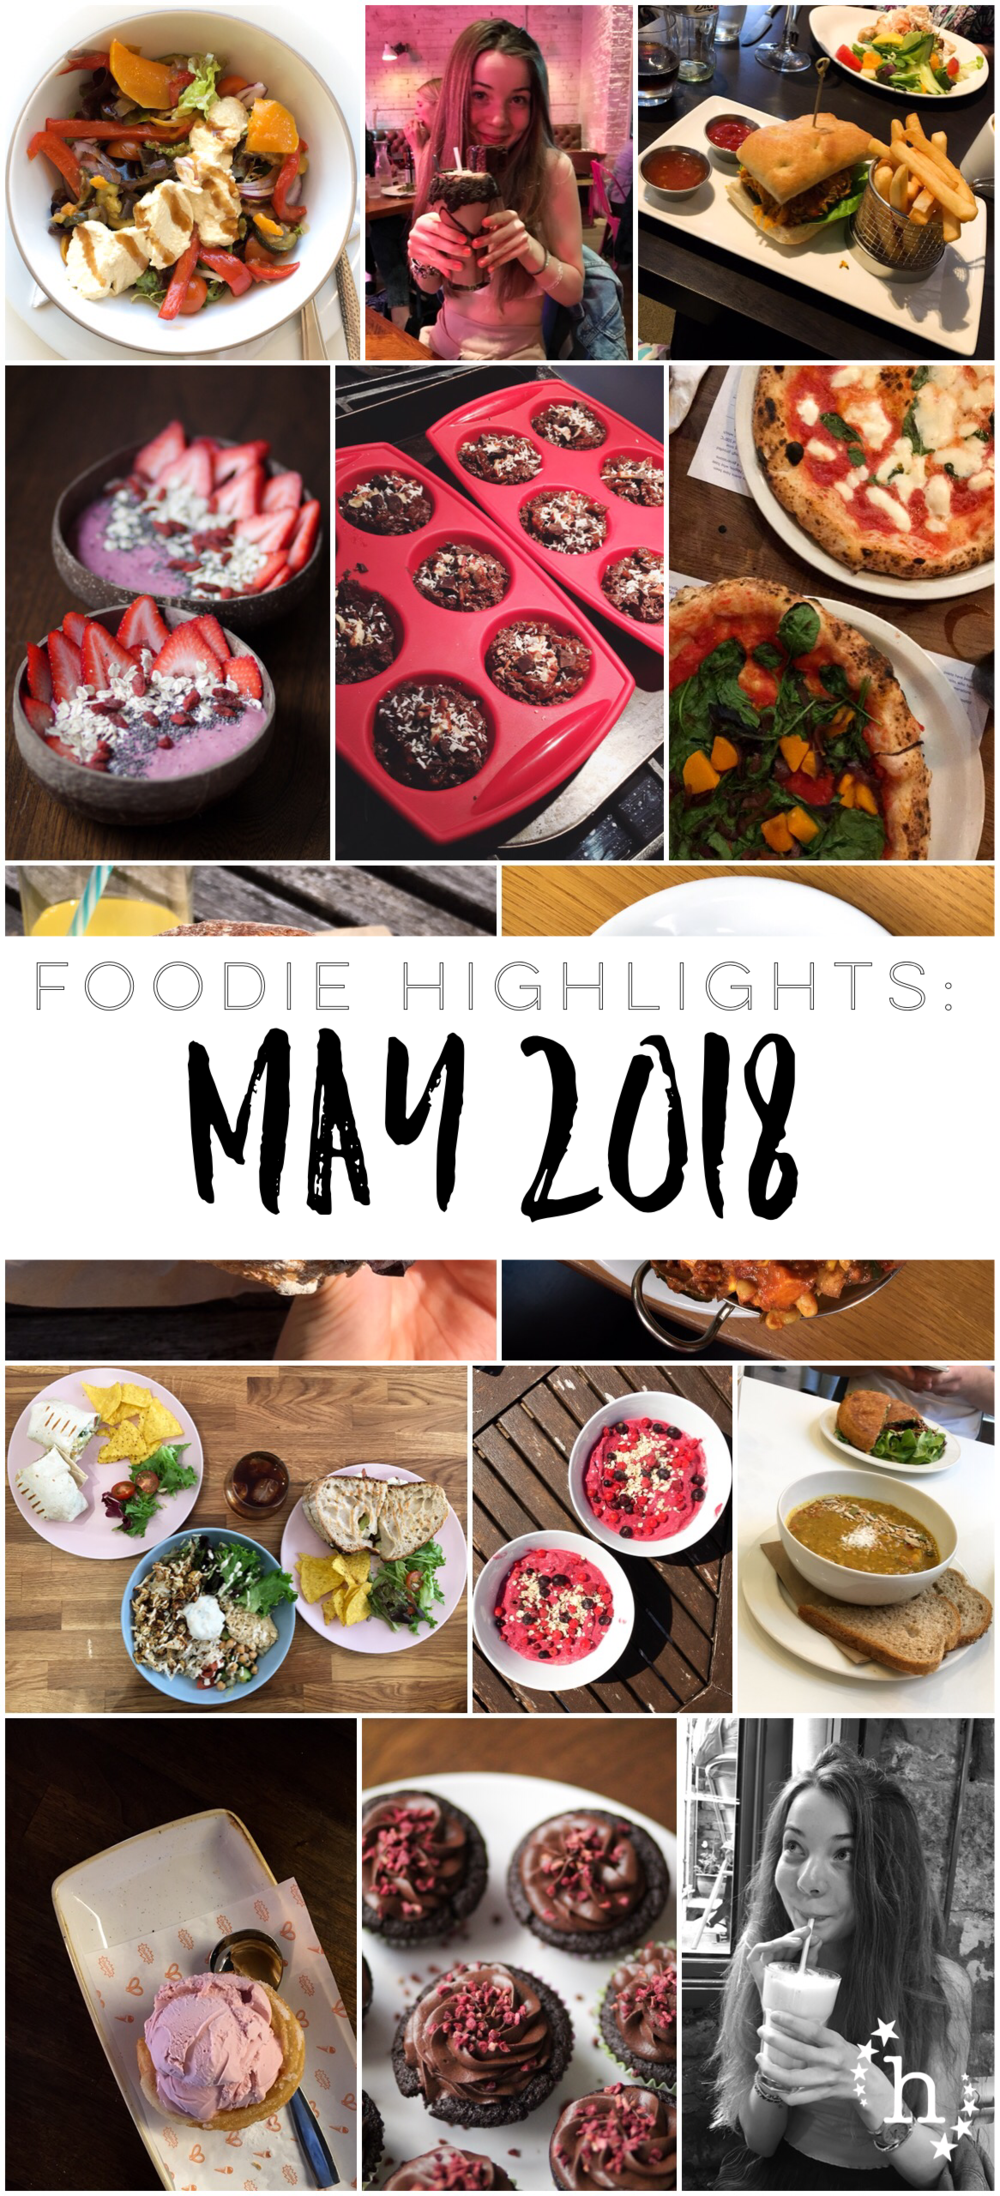 Foodie Highlights: May 2018 - hefafa.me.uk